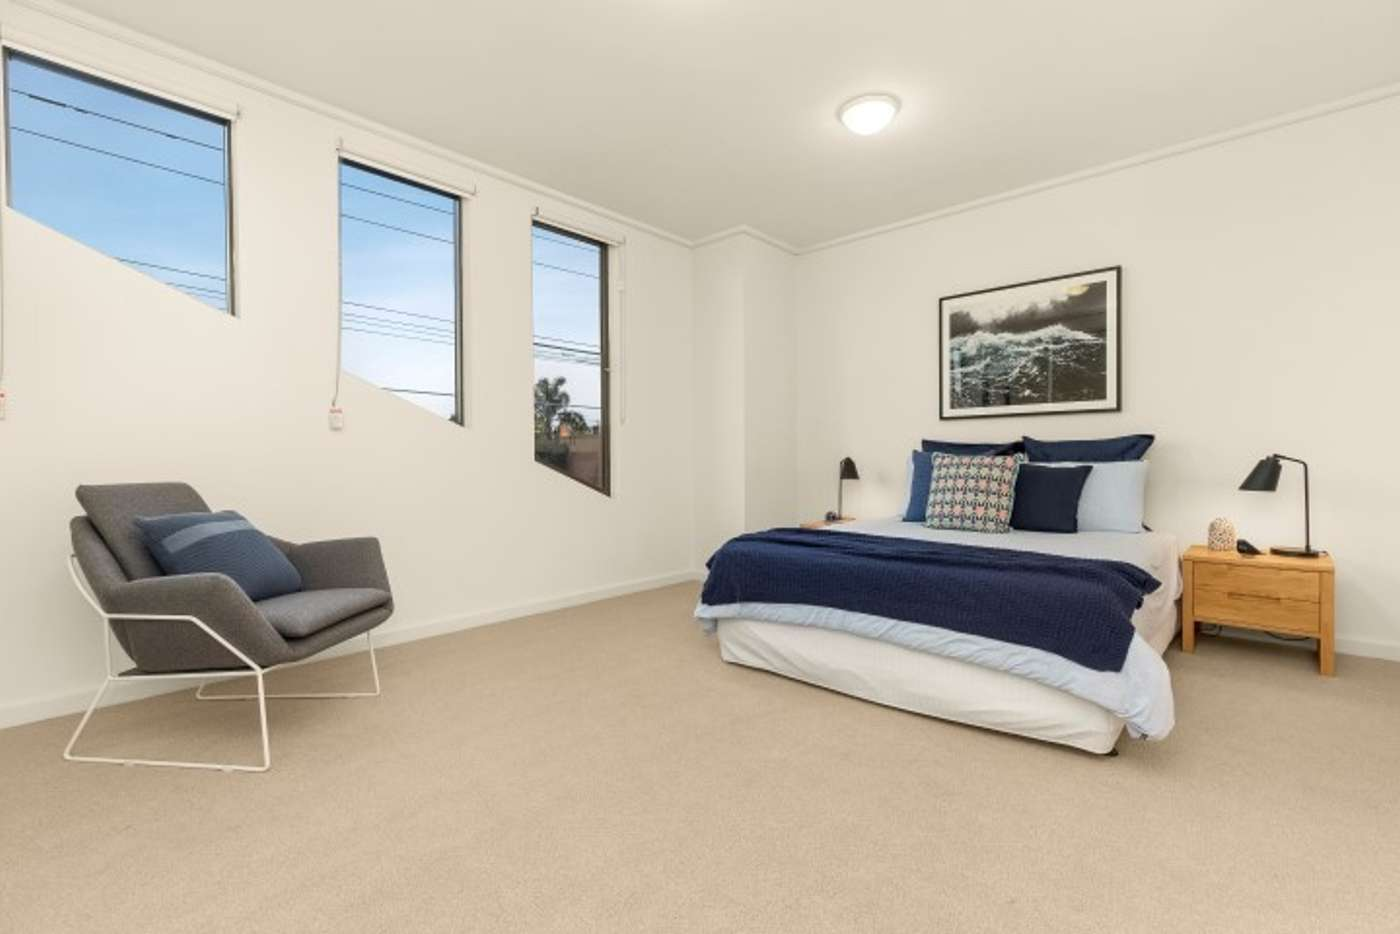 Sixth view of Homely townhouse listing, 97-101 Cruikshank Street, Port Melbourne VIC 3207